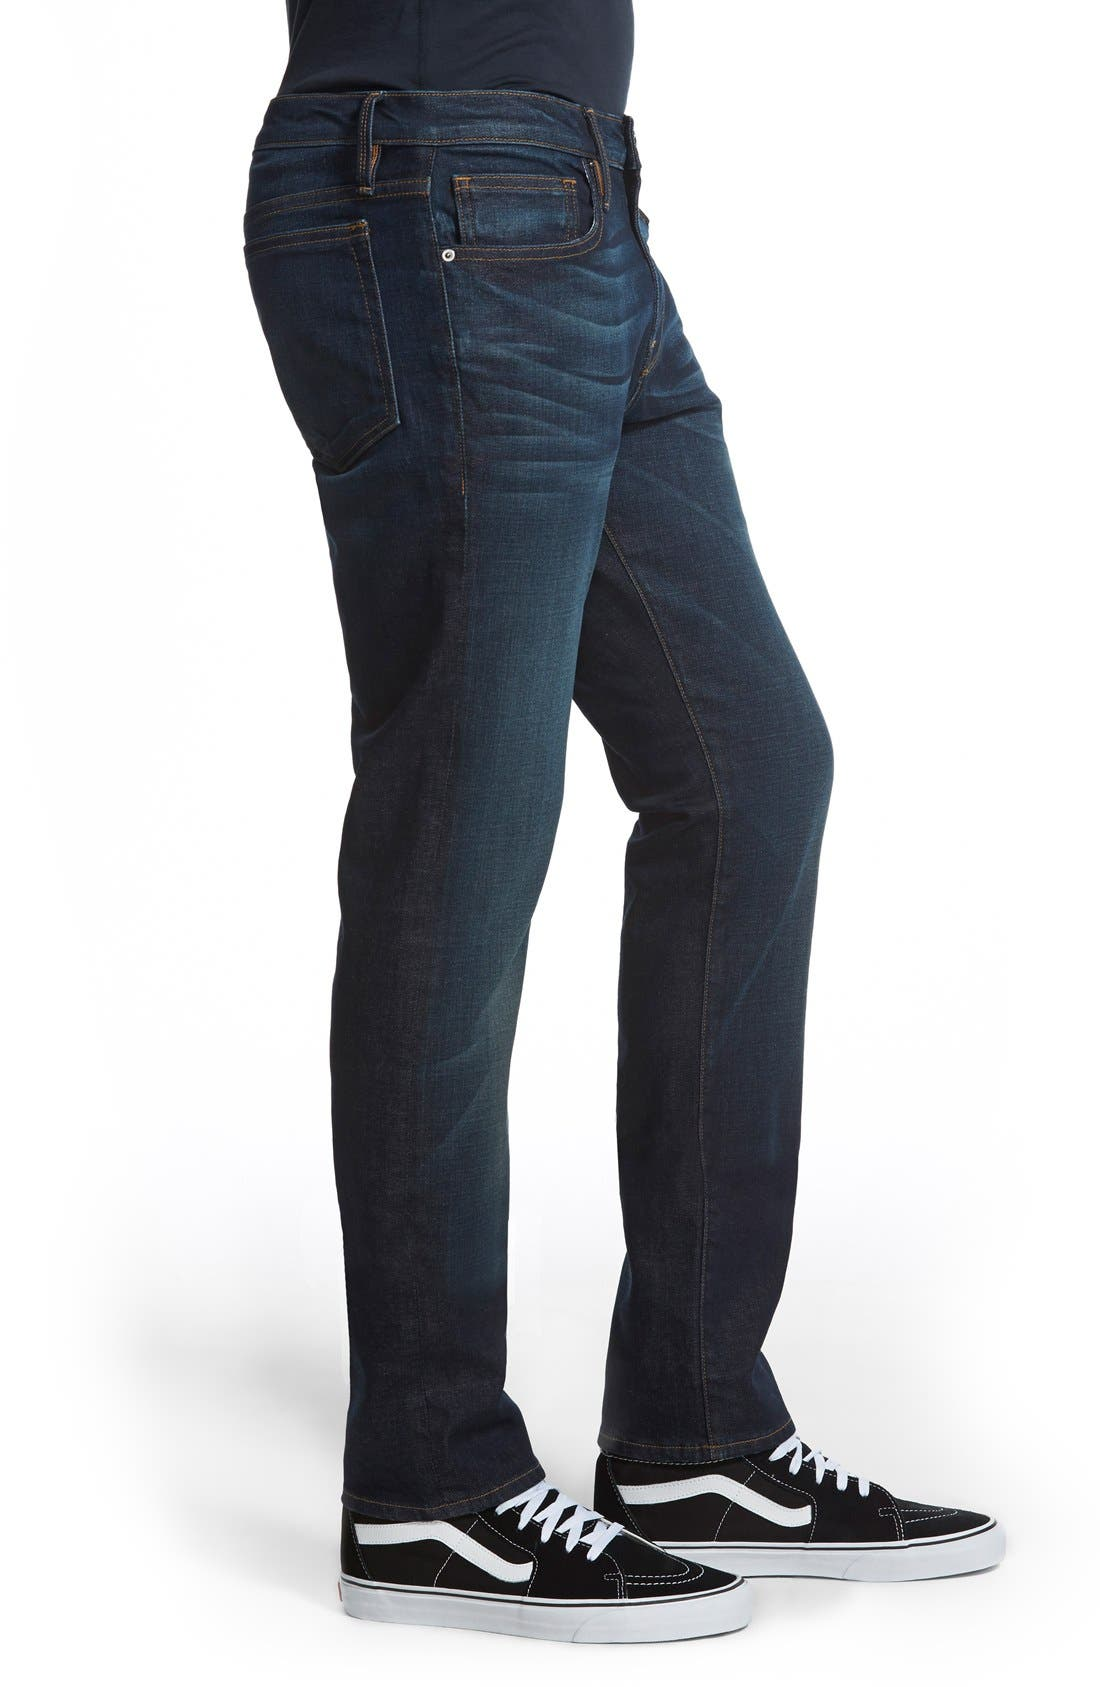 L'Homme Skinny Fit Jeans,                             Alternate thumbnail 11, color,